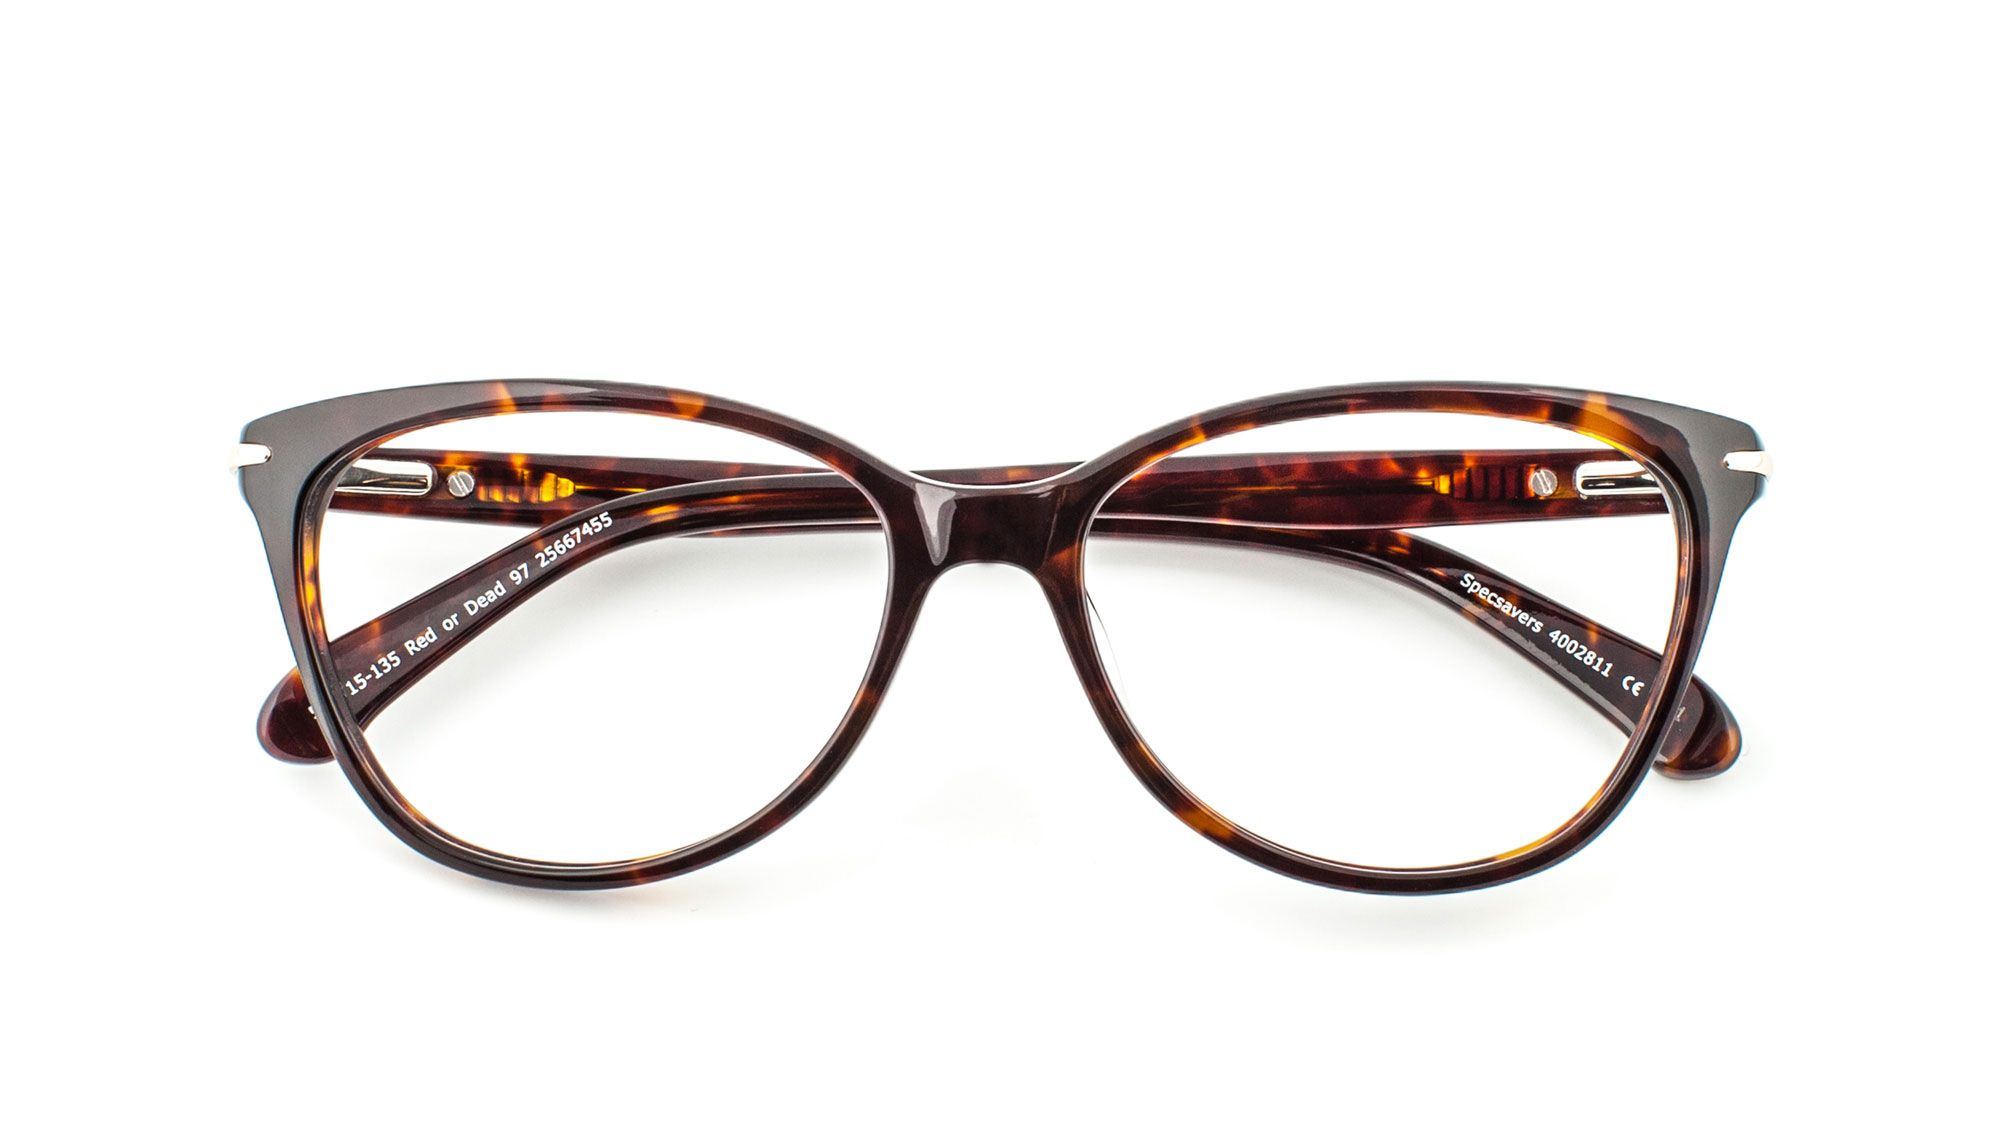 148e88ef7fda Red or Dead glasses - RED OR DEAD 97 I like these! They look big and  slightly cat eyed.